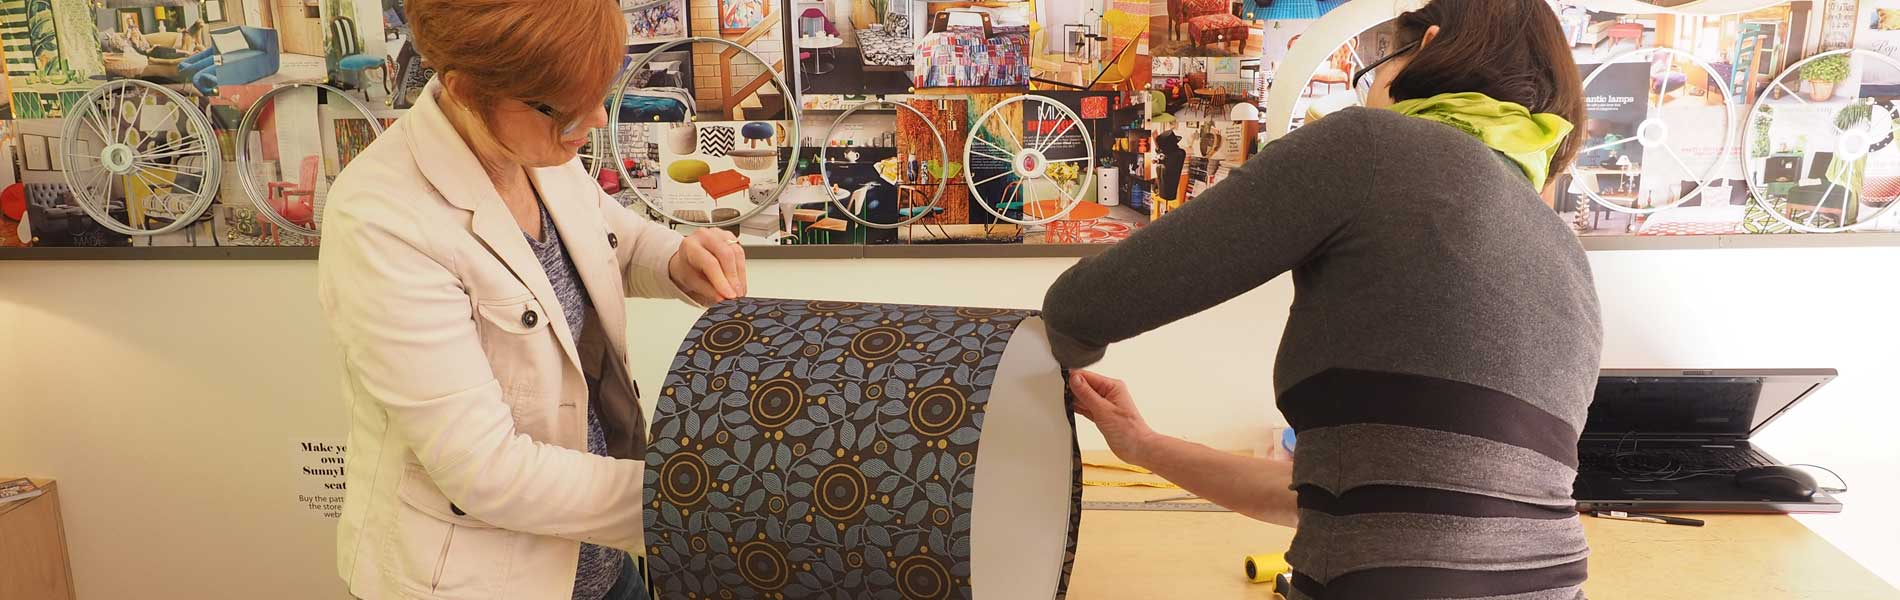 Lampshade workshops and lessons at Ministry of Handmade